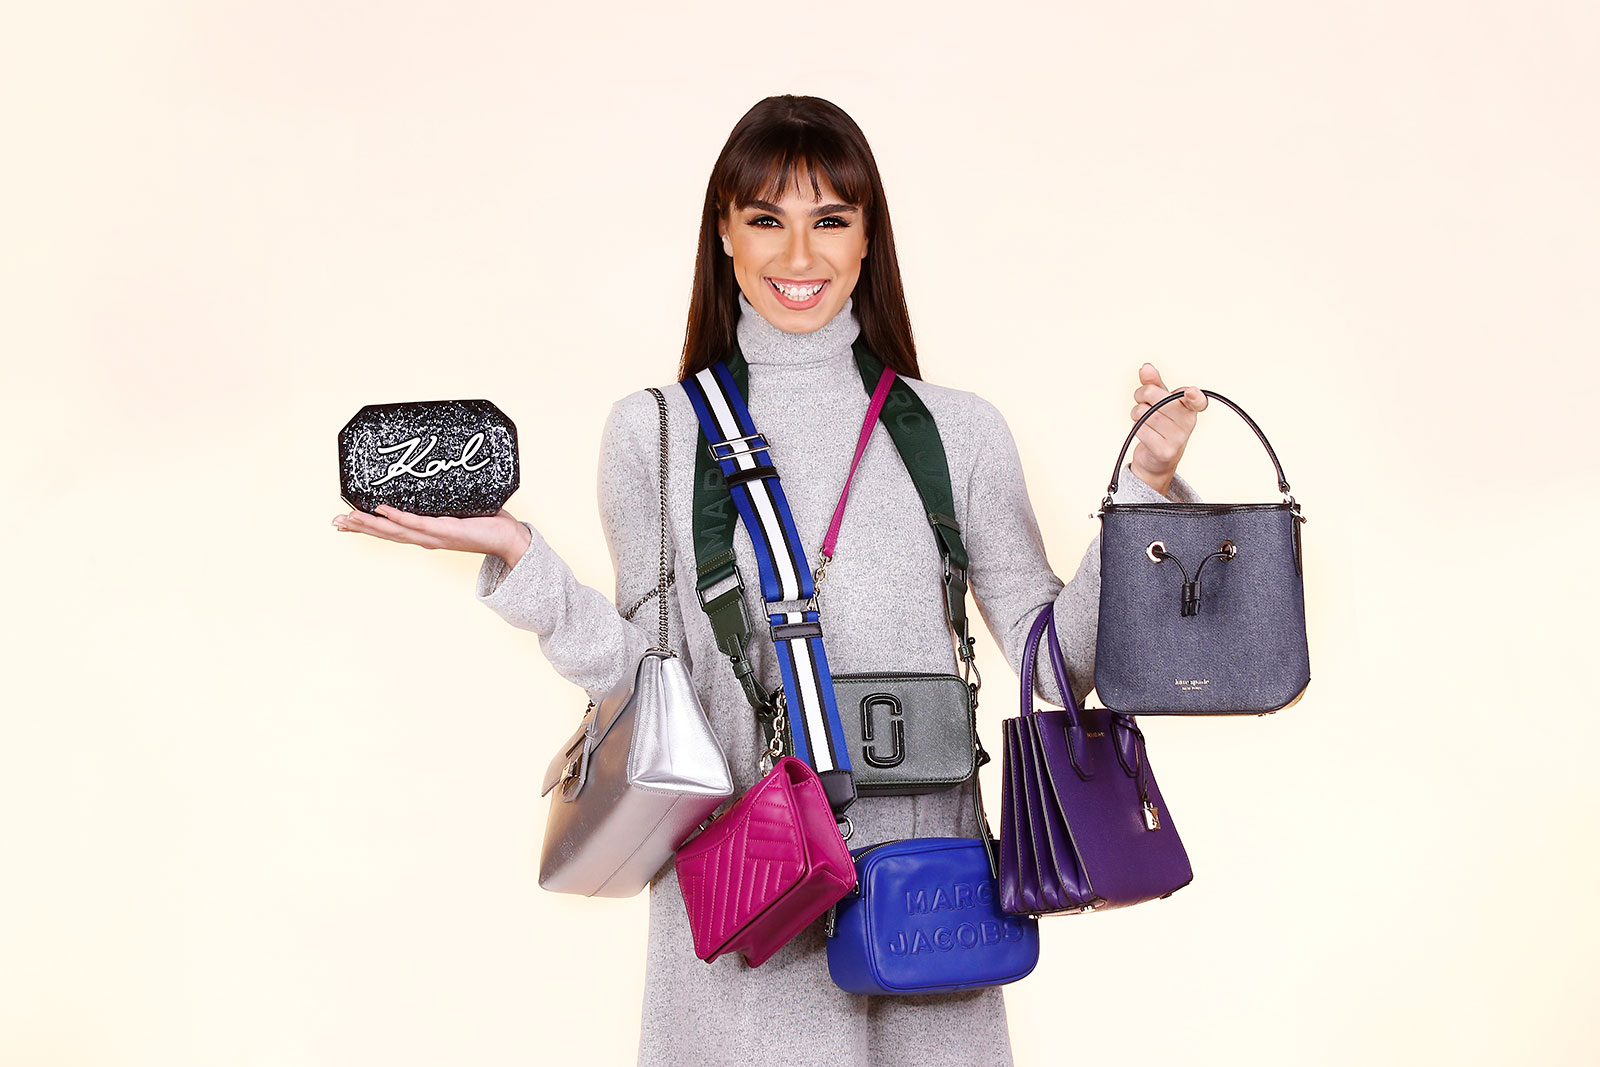 A Model carrying rented bags from Vie trendy